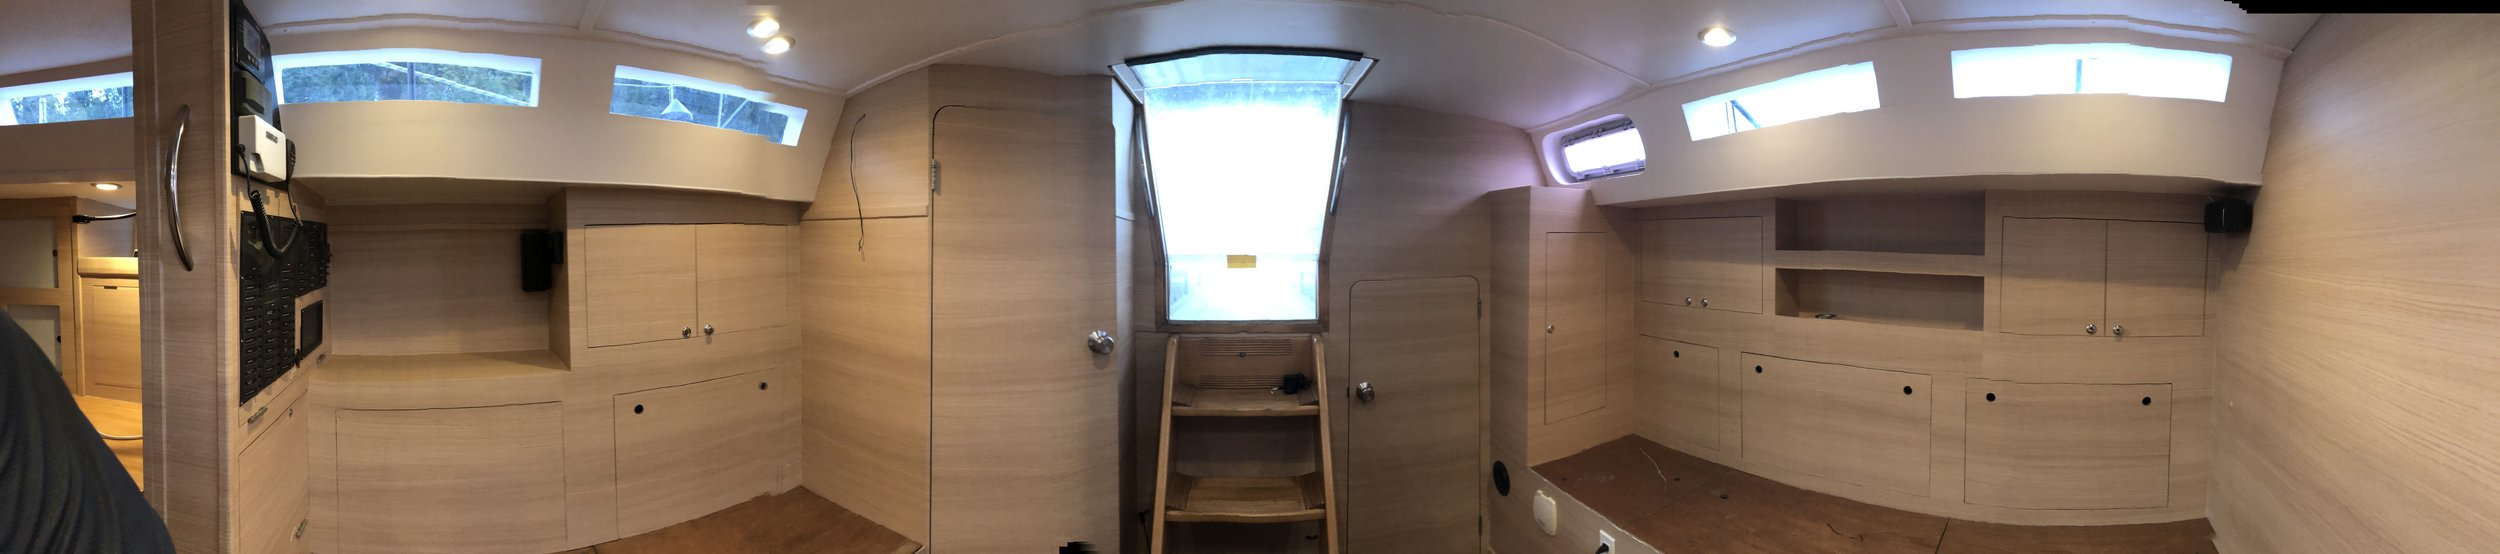 180 Degree view inside the sail boat